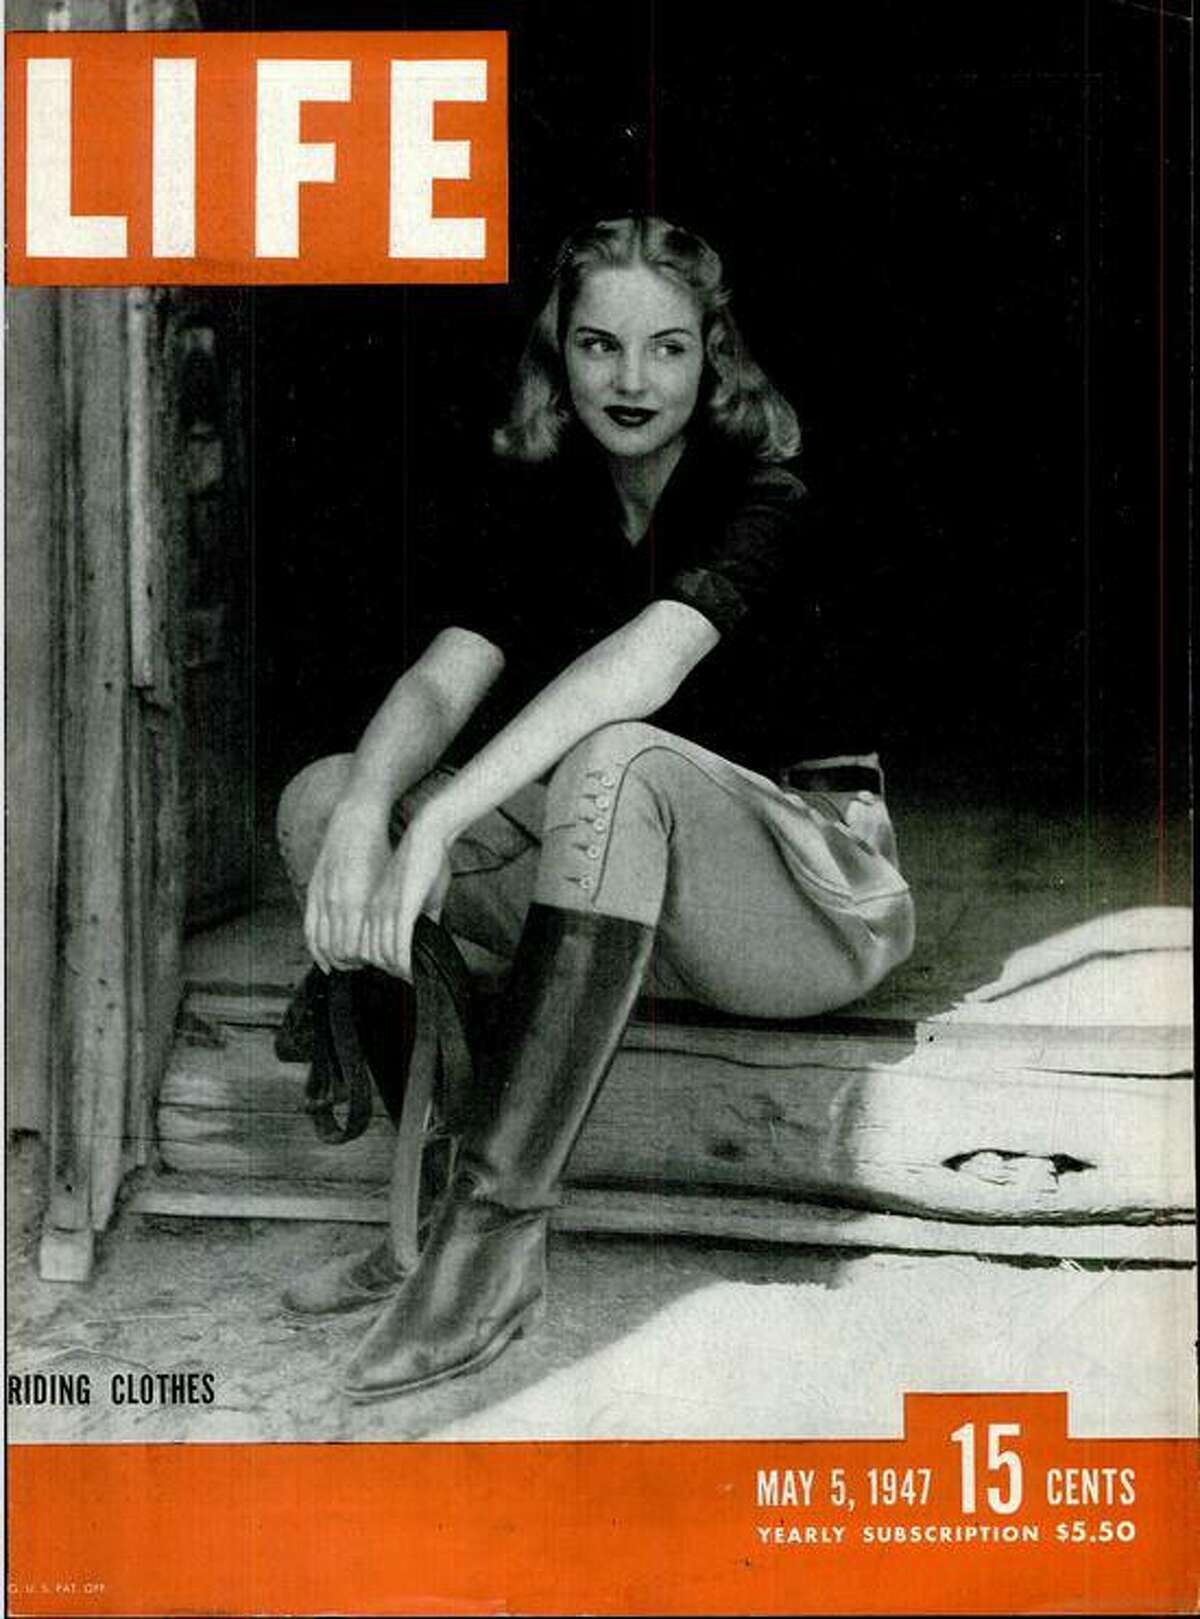 Judith Jackson on the cover of Life magazine, 1947.